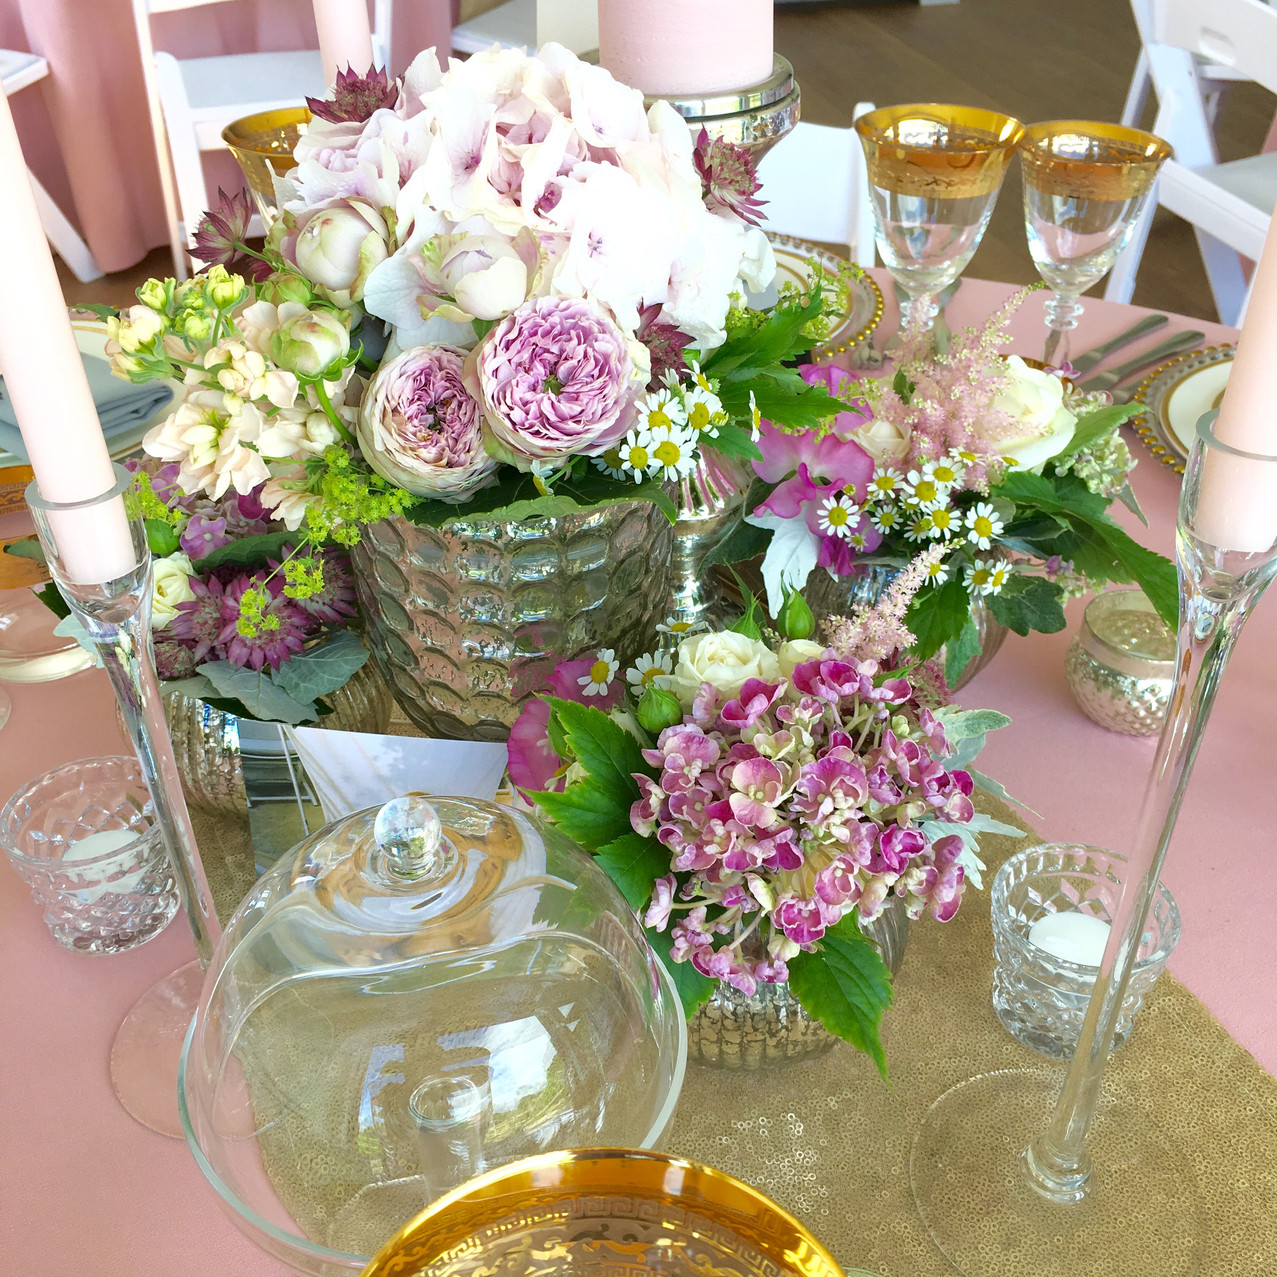 Low level vases with coordinating pink and ivory flowers at the Barn, Kingston House Devon